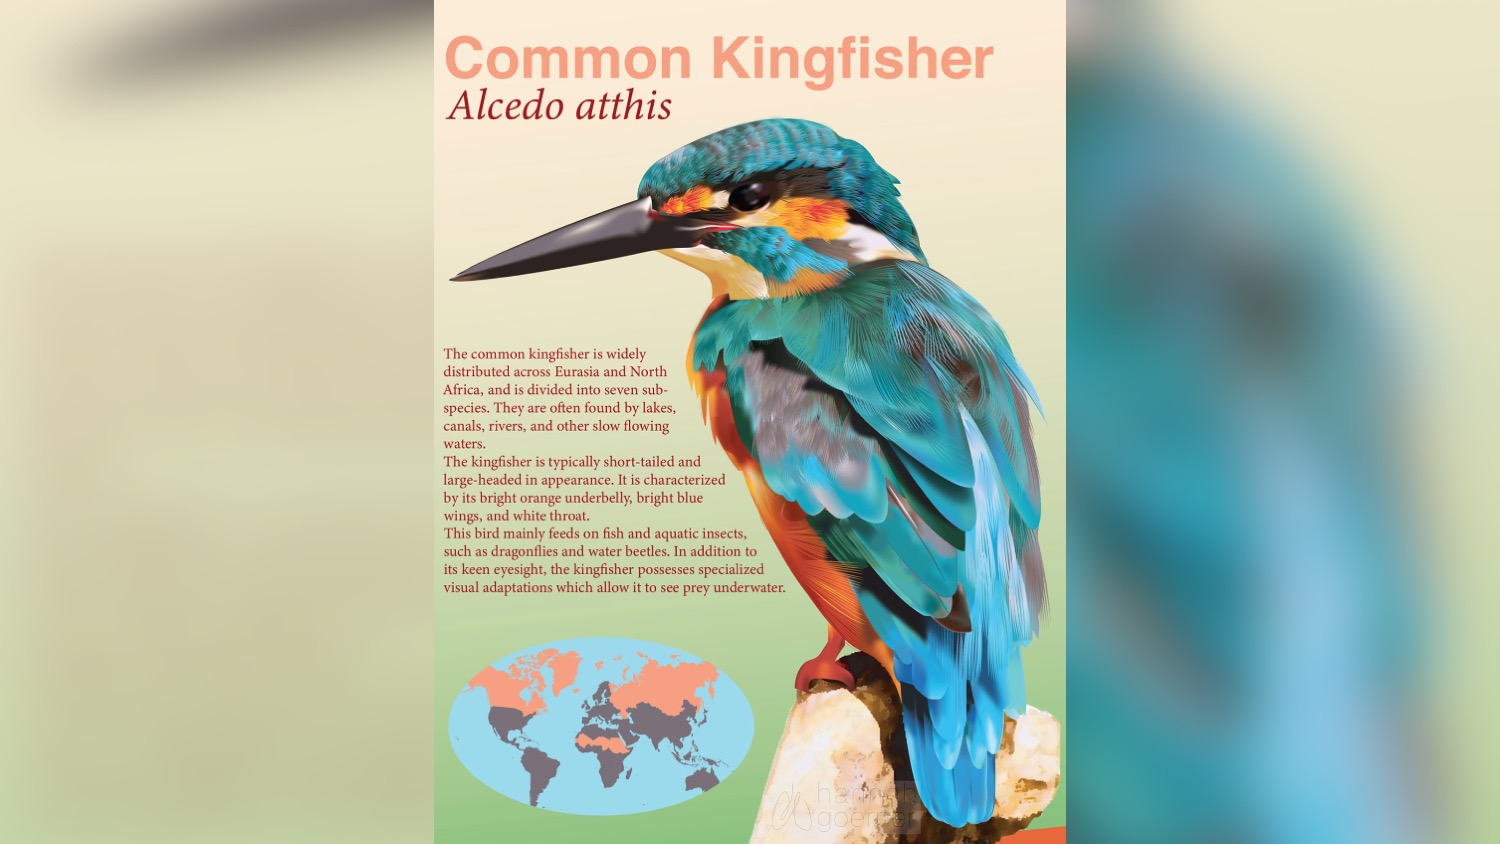 An illustration of a common kingfisher bird.